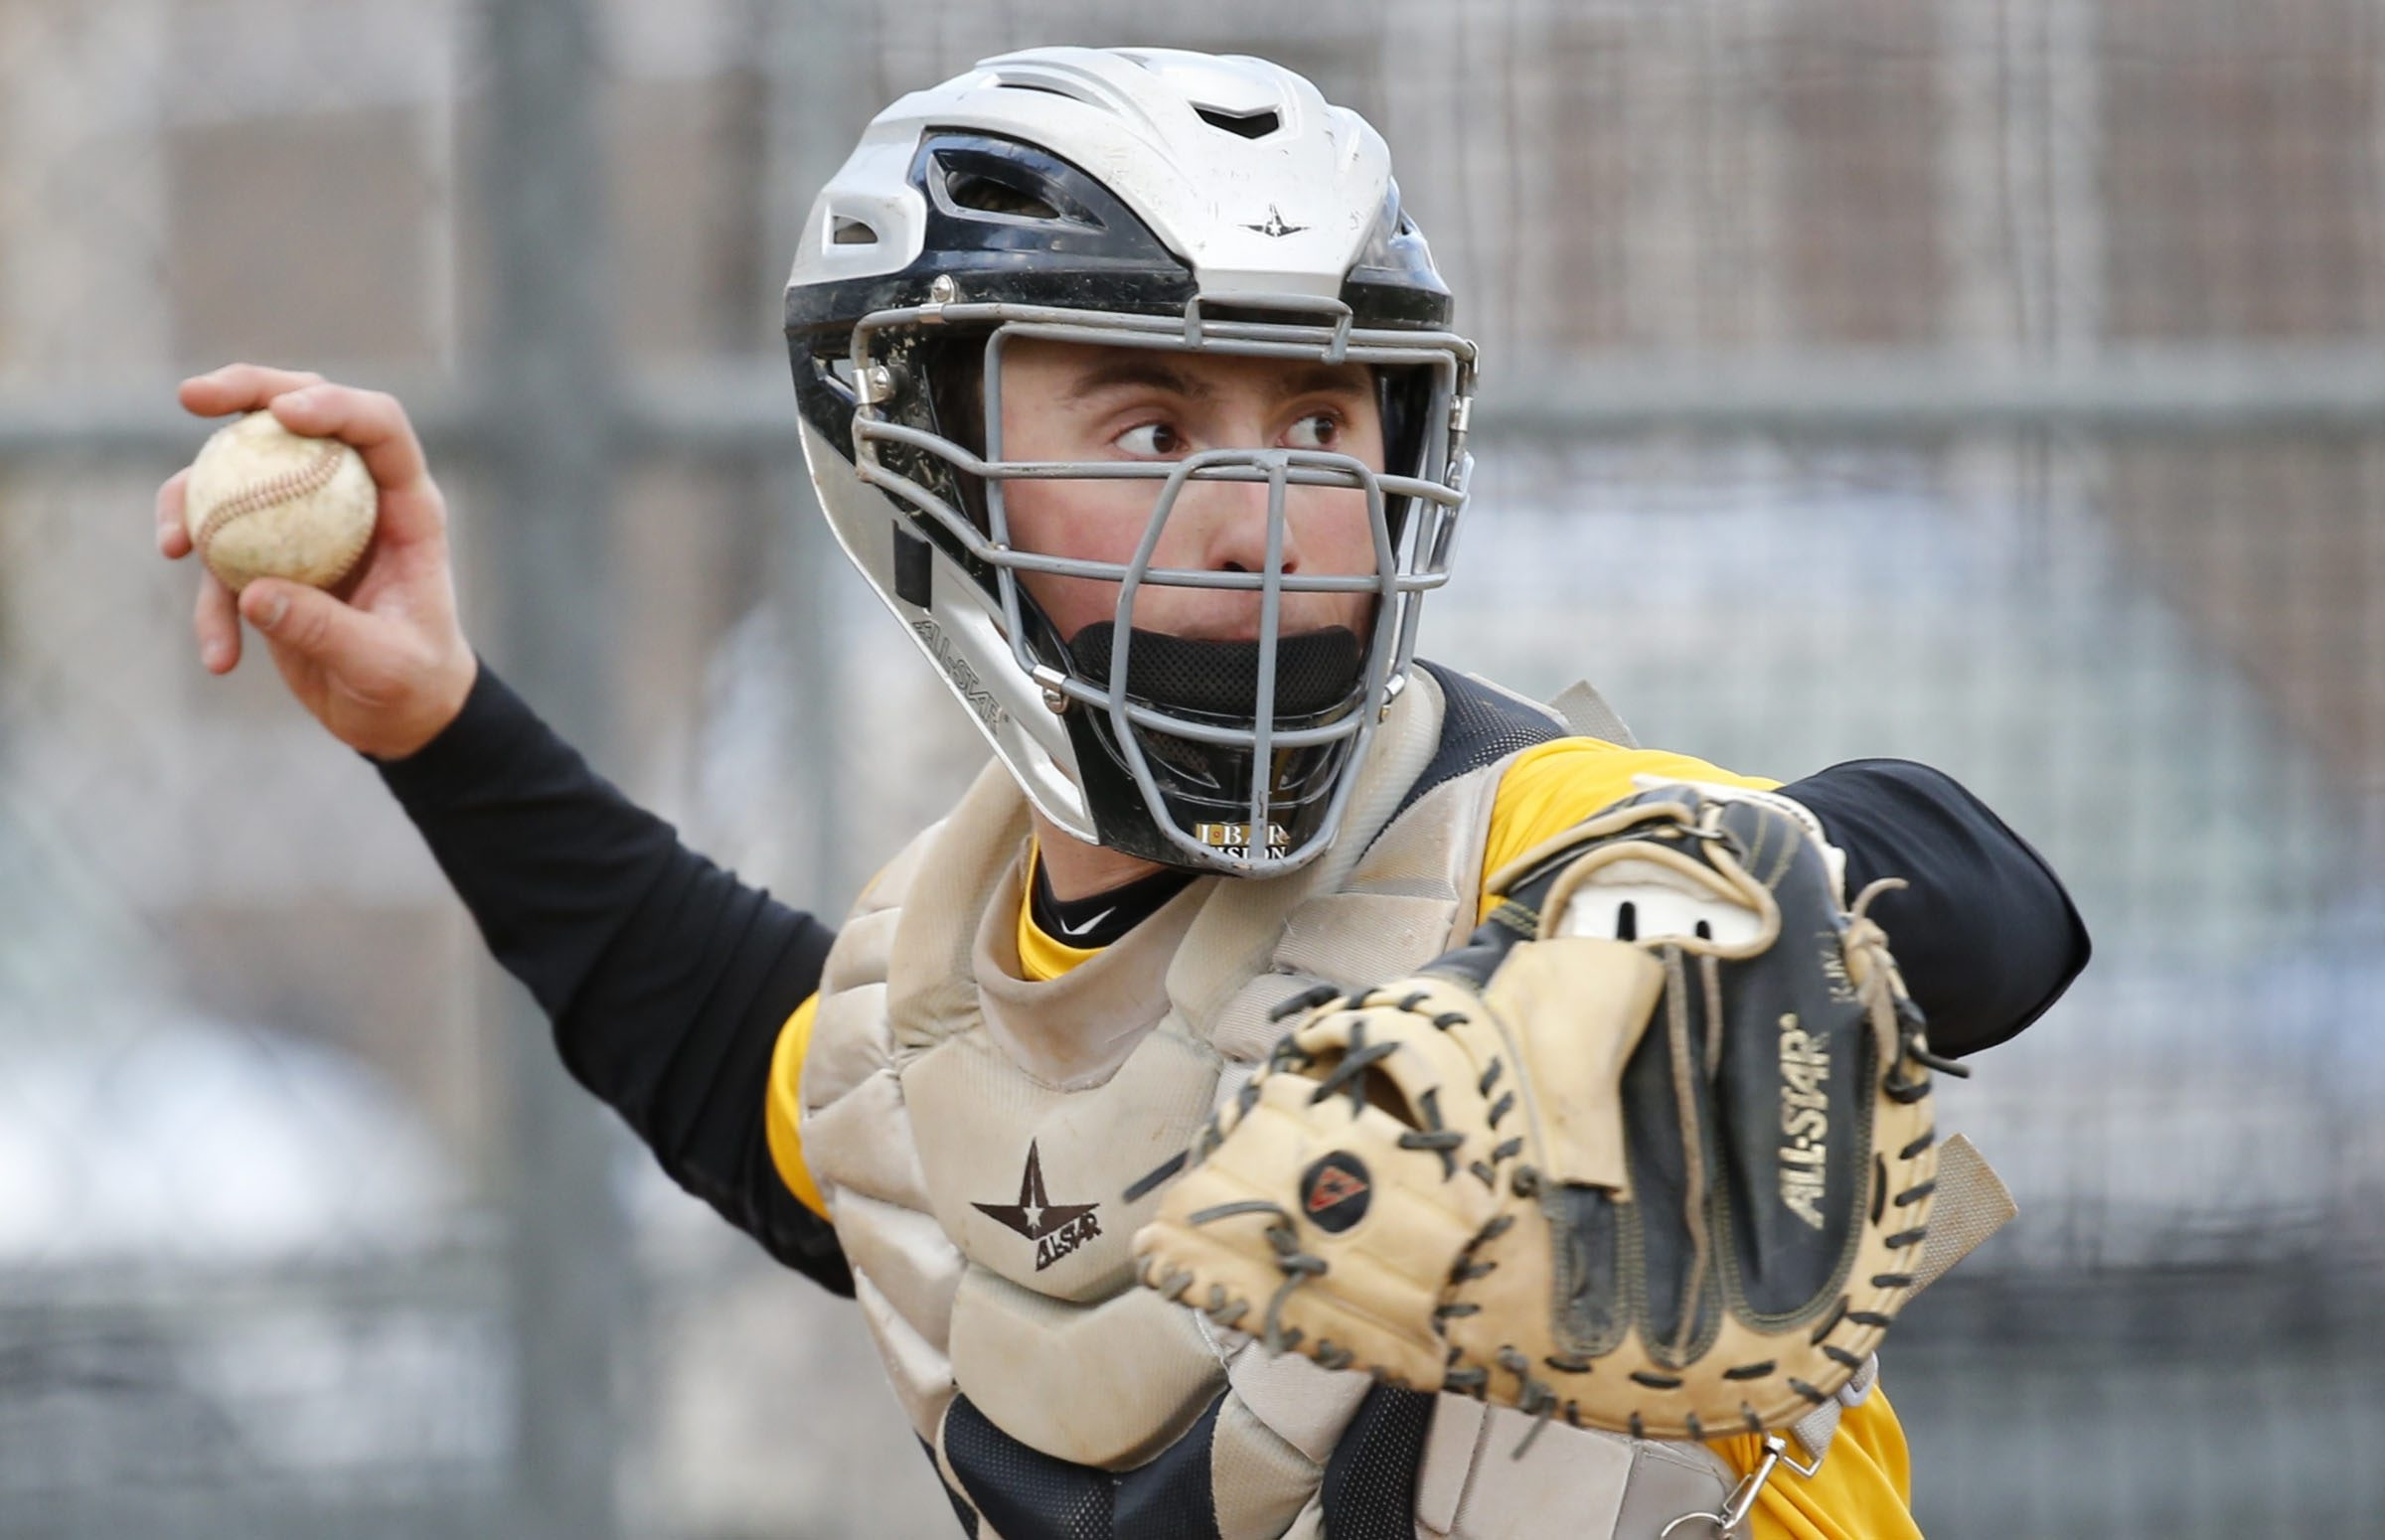 Williamsville North's Andrew White's experience as a catcher often frustrates those who are behind the plate when he pitches because he often shakes off the signs they give him.